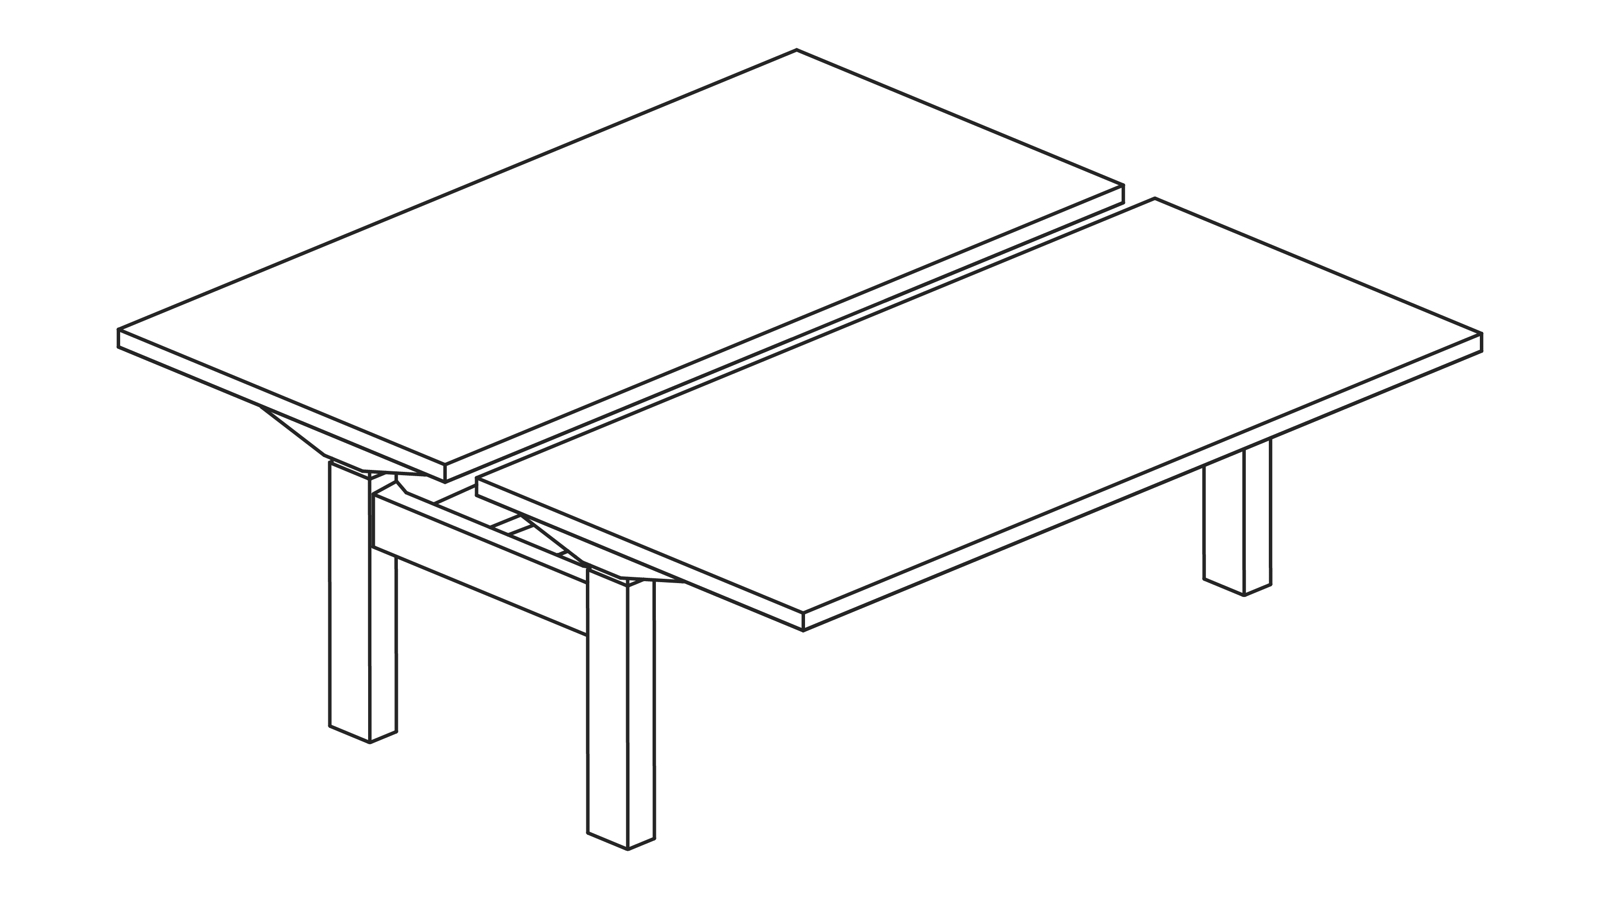 A line drawing of a Nevi Link standing desk system with two back-to-back rectangular work surfaces. Both desks are at sitting height.